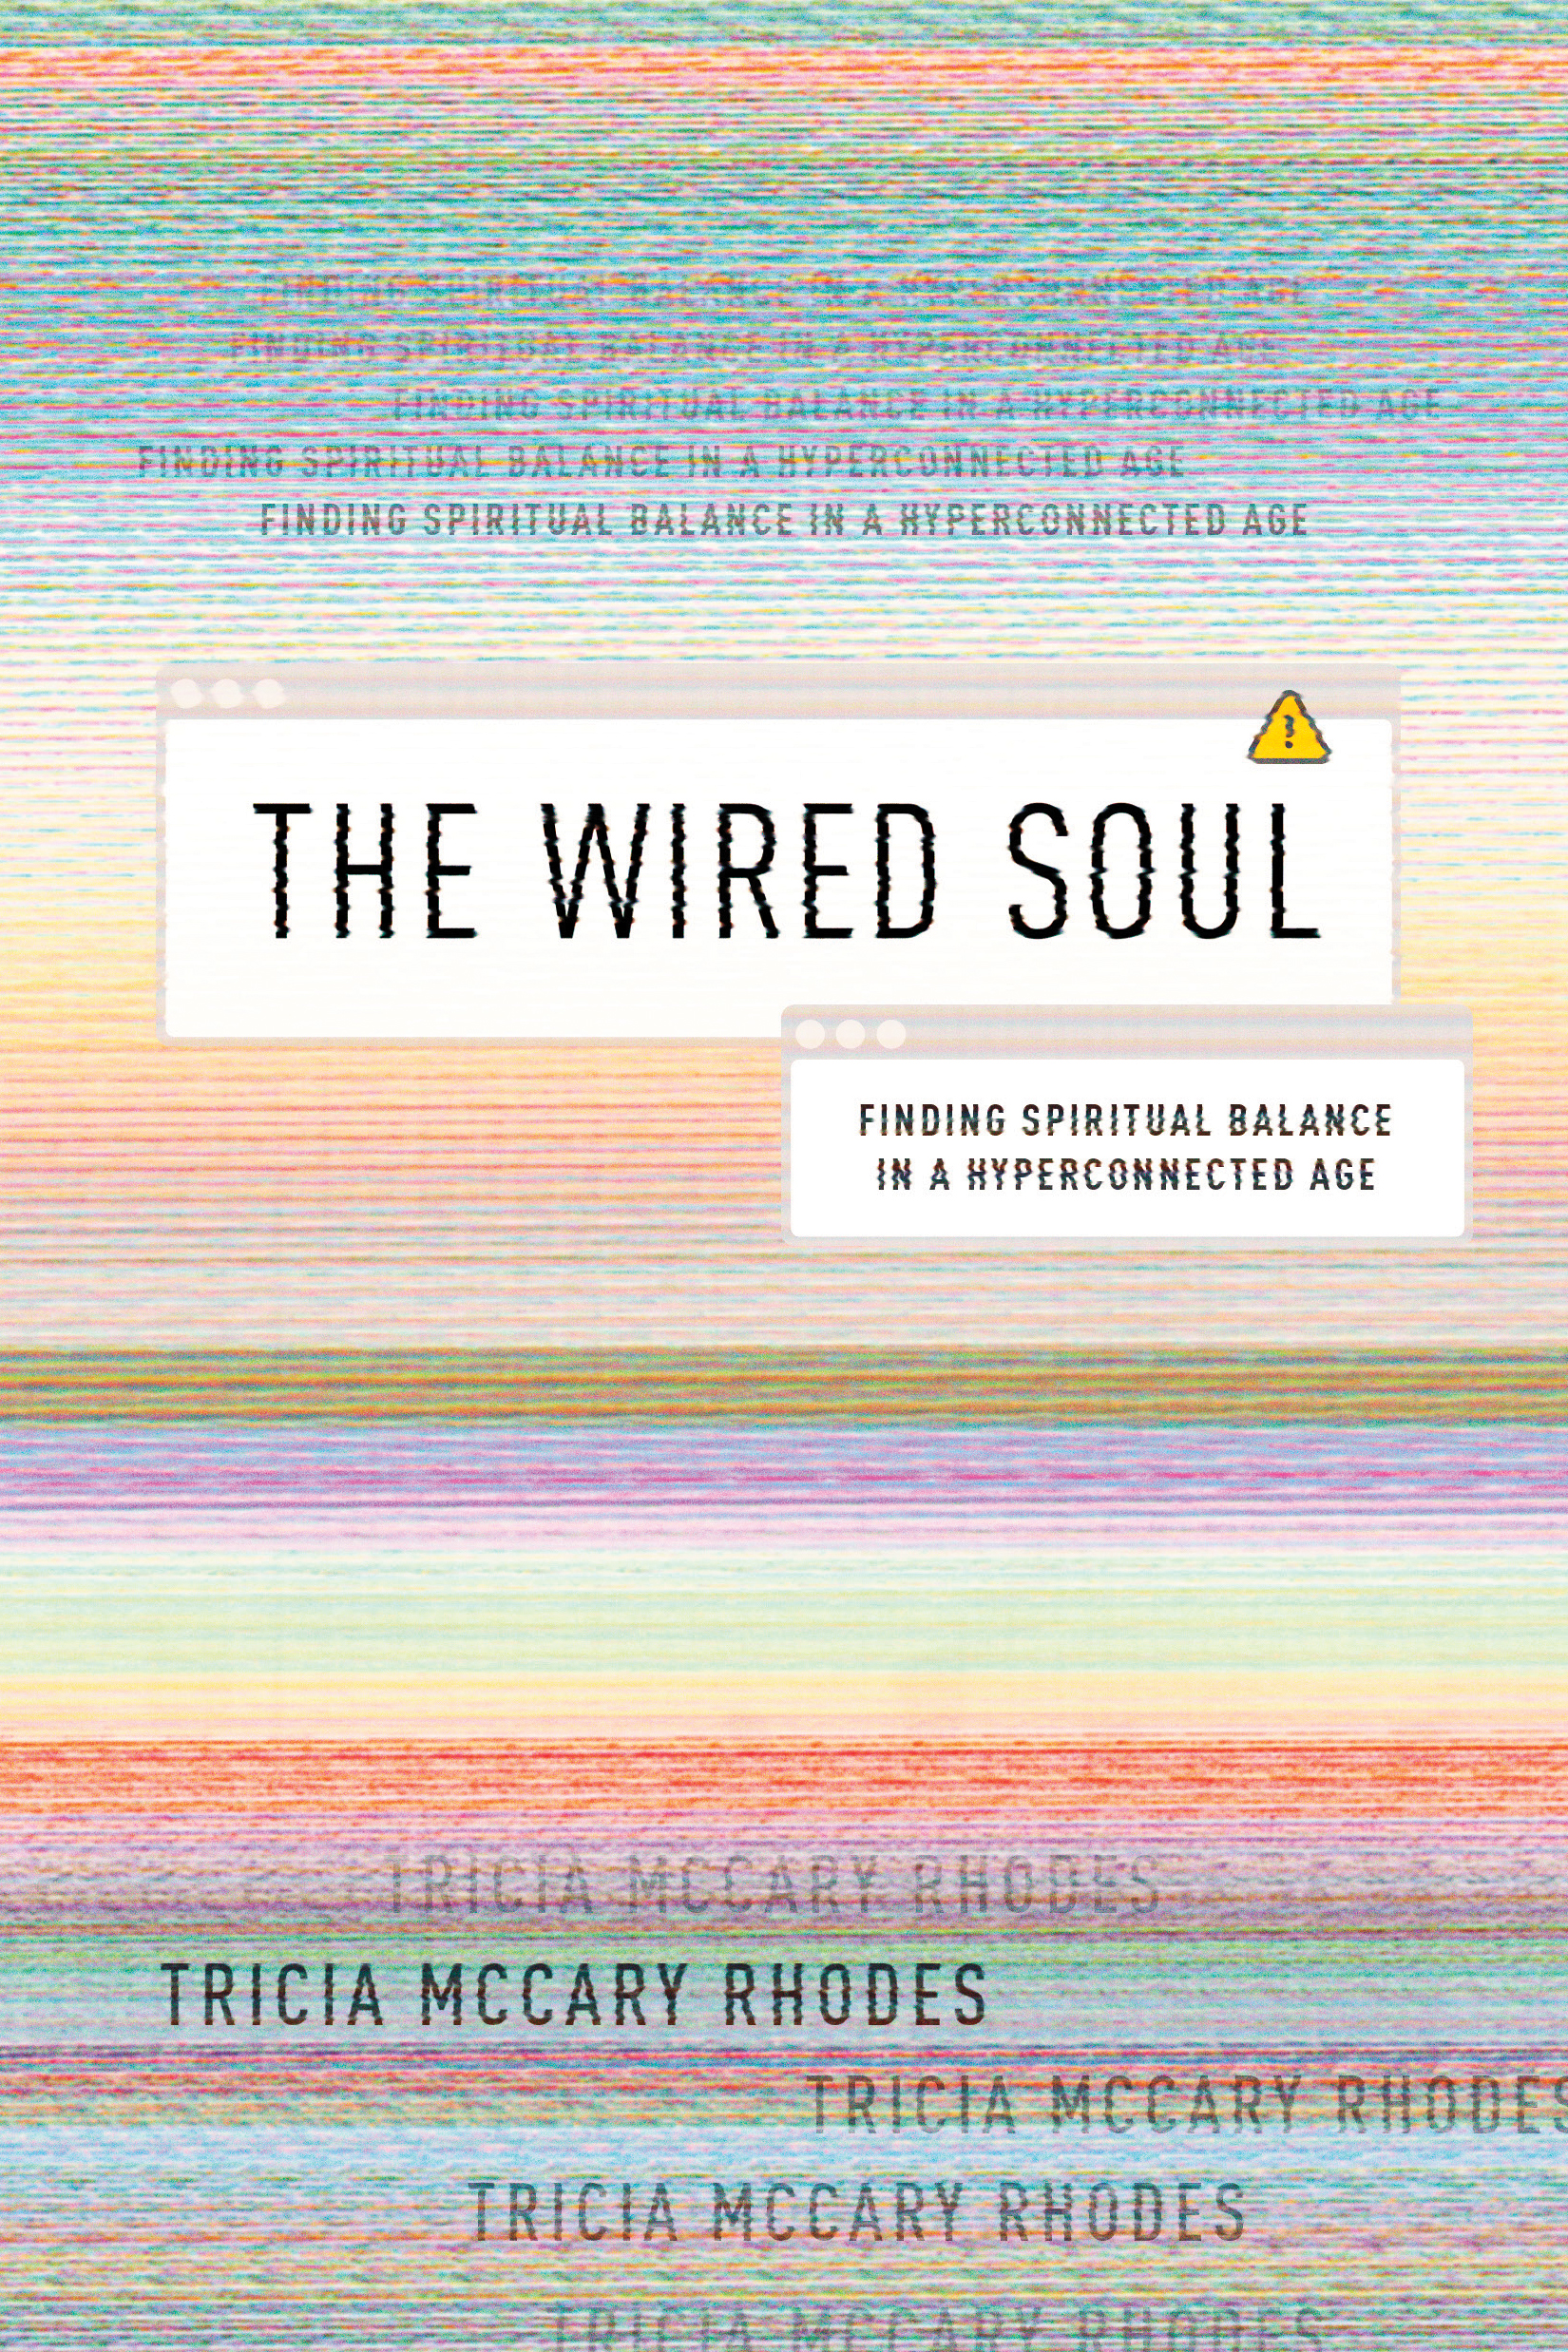 Cover of The Wired Soul, by Tricia McCary Rhodes